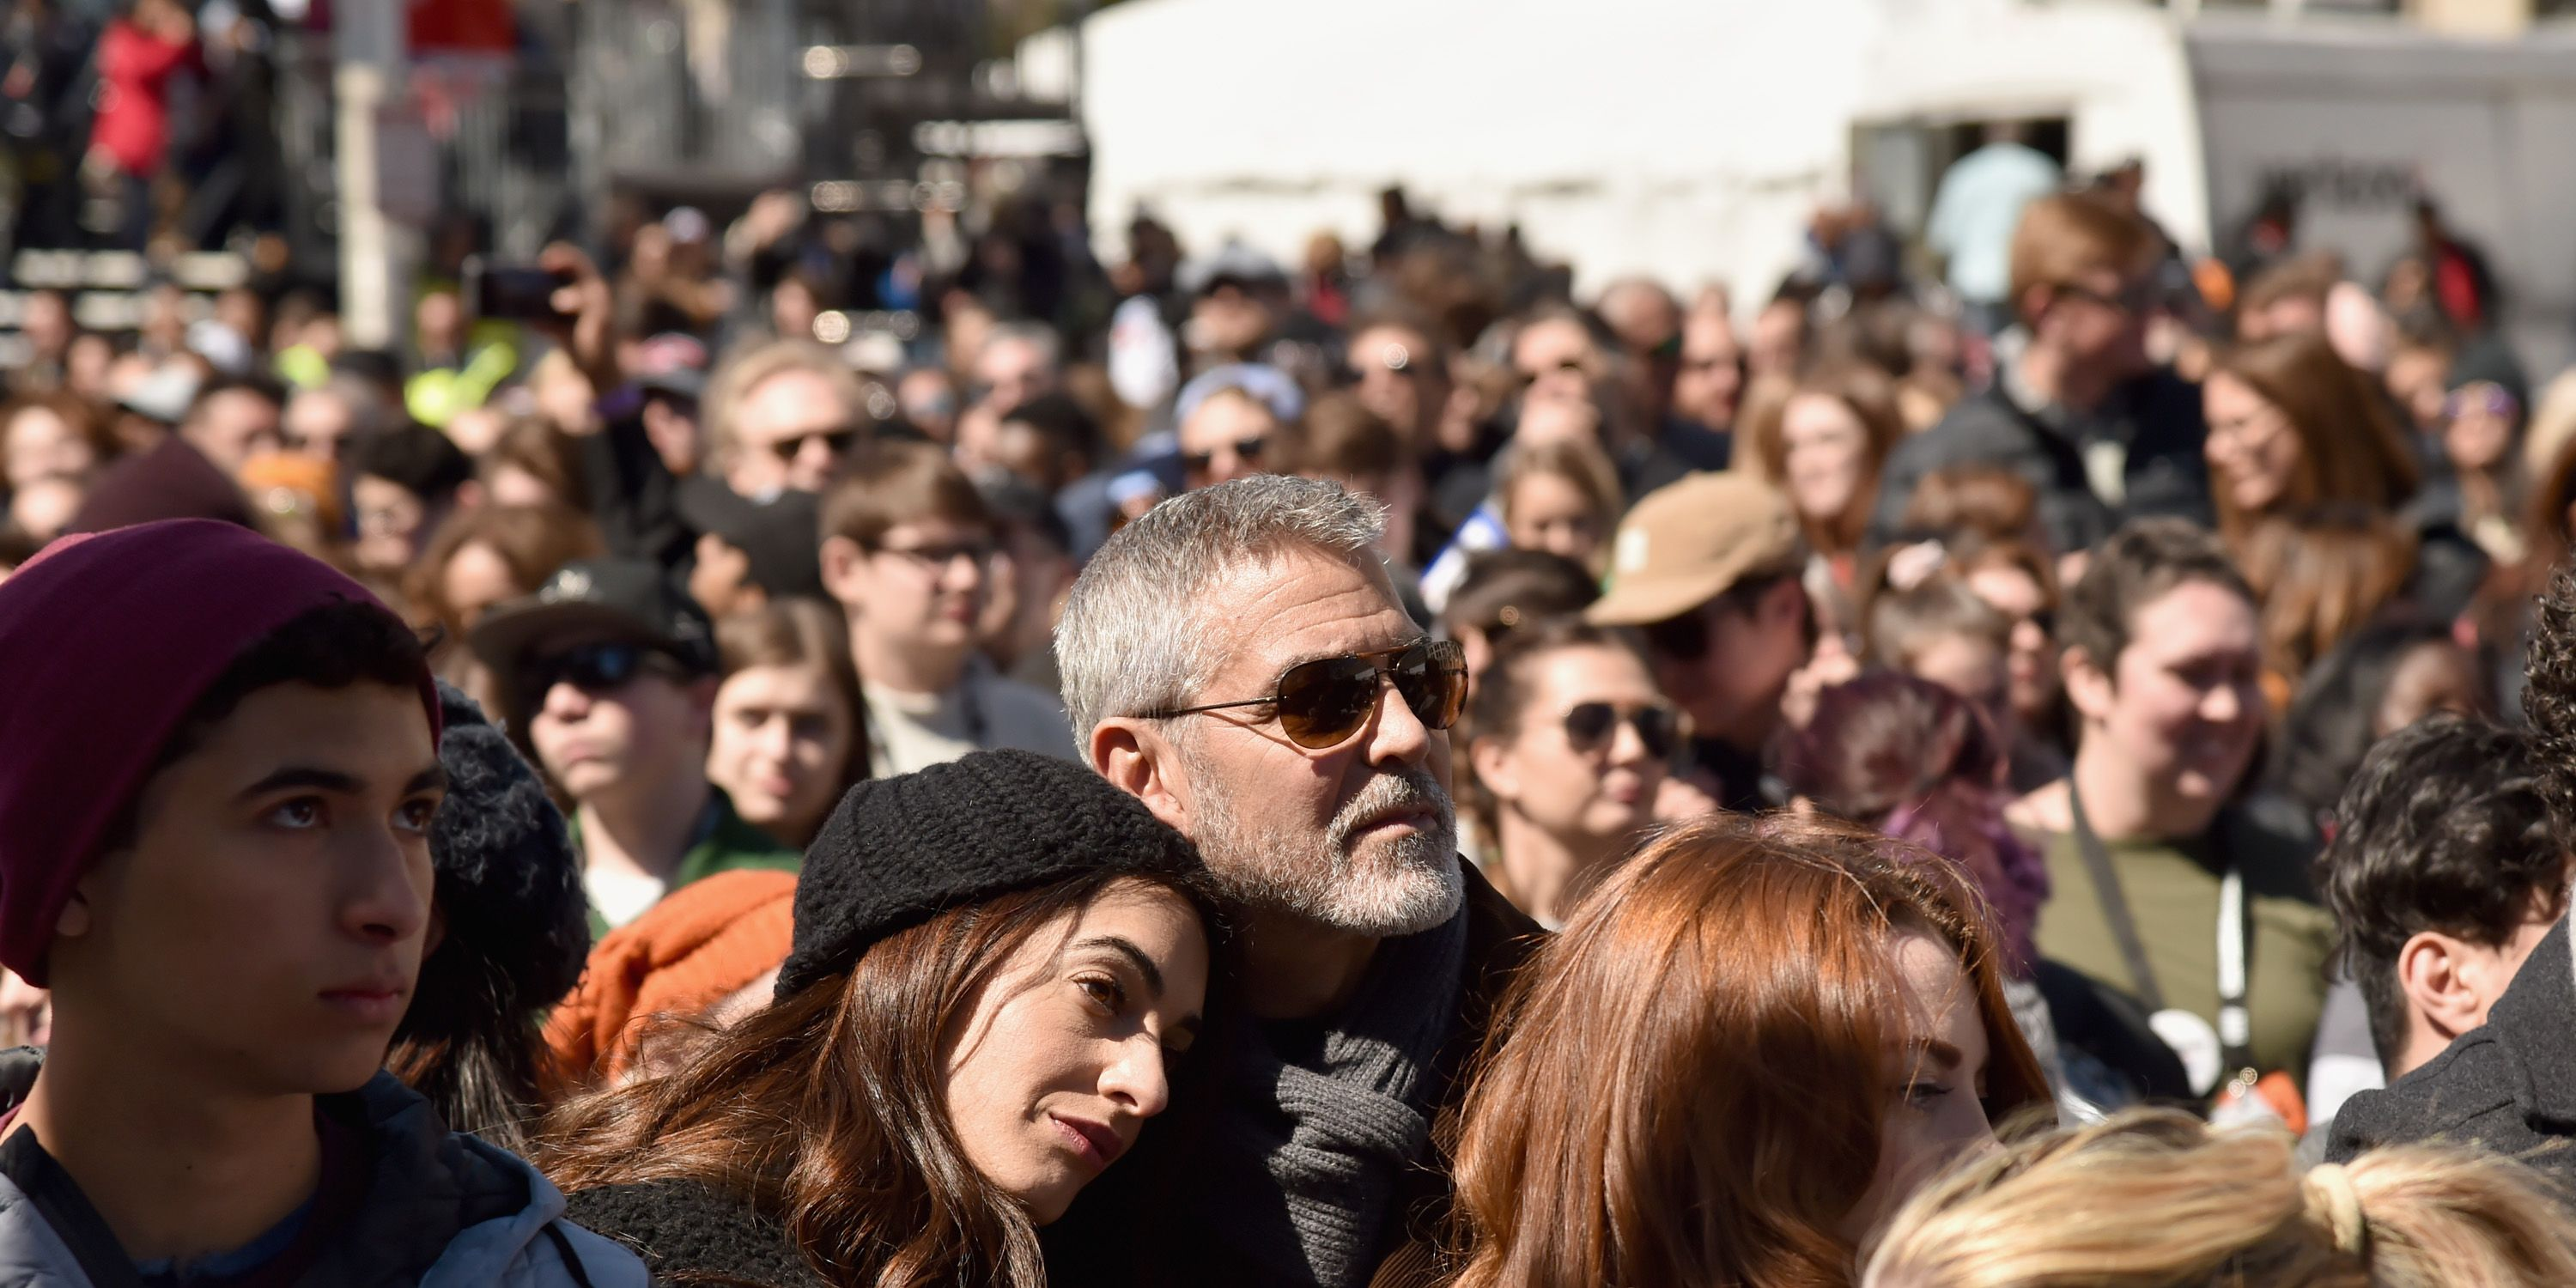 George Clooney,AmalClooney, March For OurLives,Washington